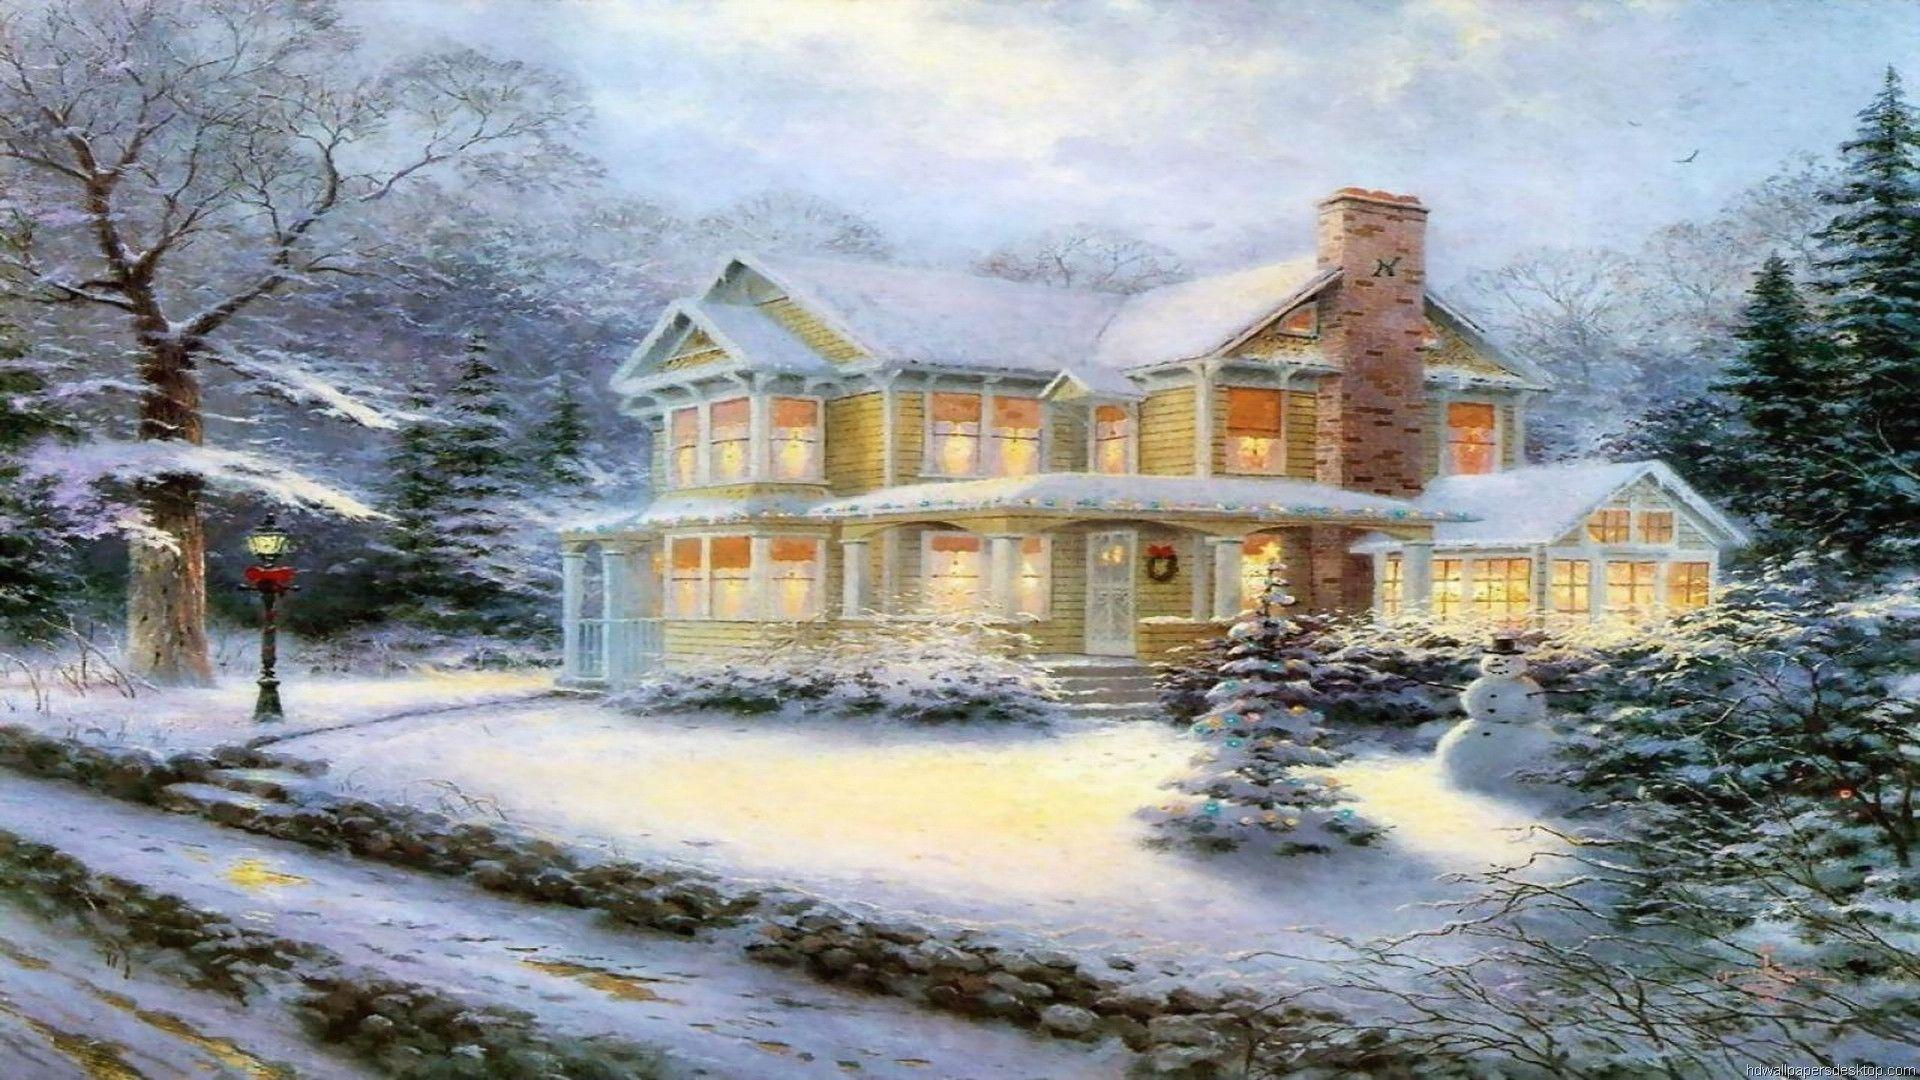 thomas kinkade christmas wallpapers – 1920×1080 High Definition